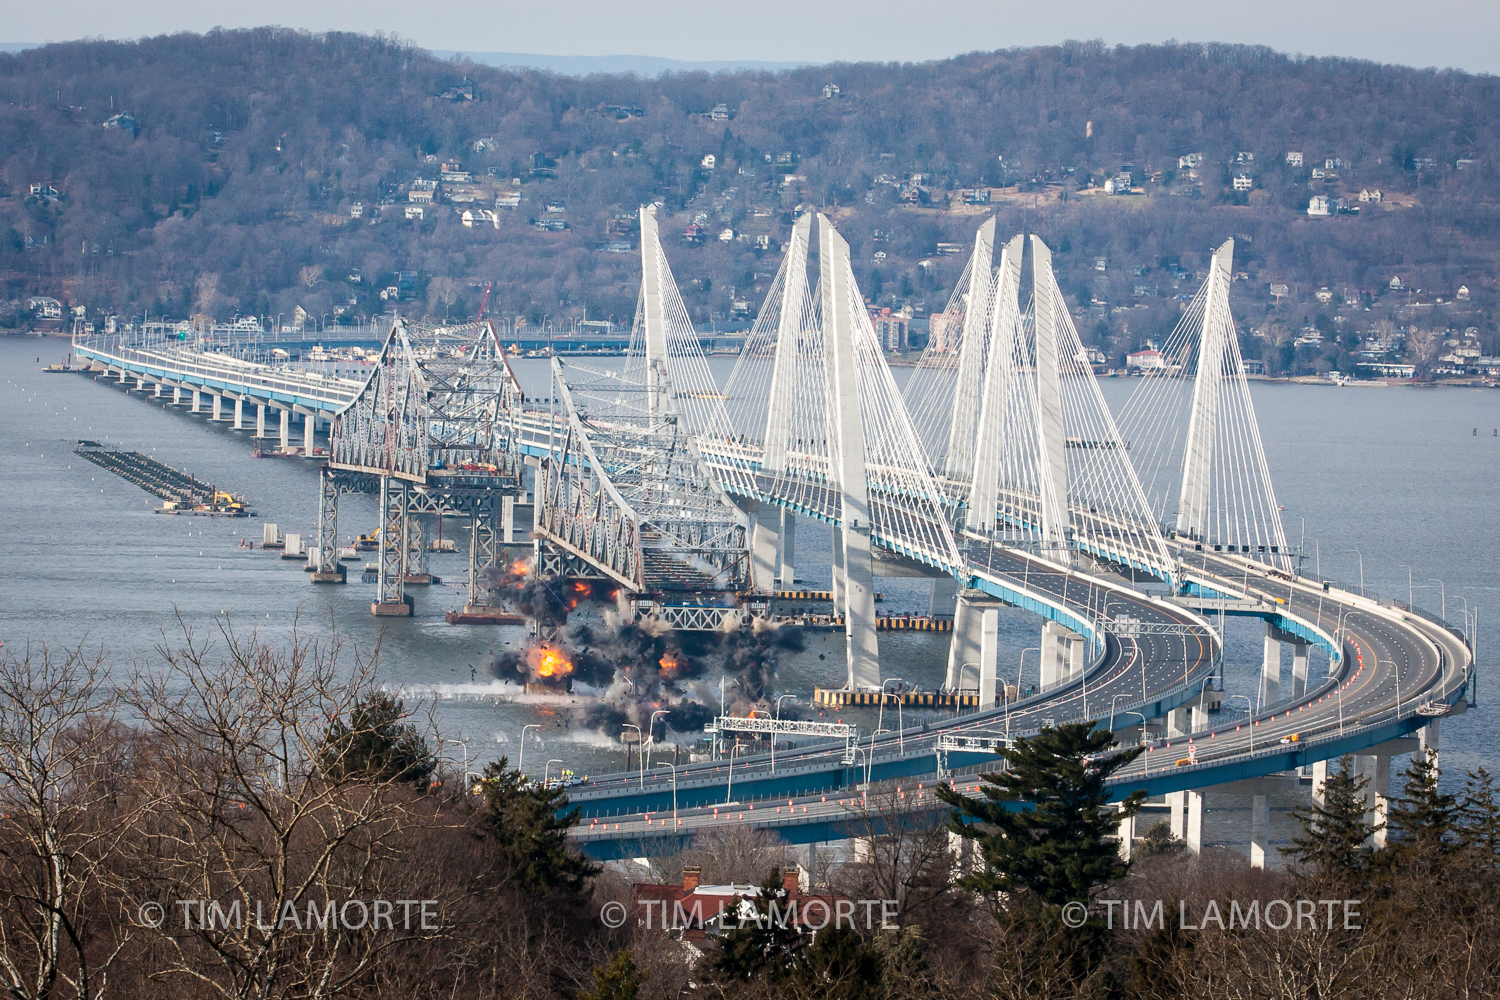 The demolition of the east anchor span as seen from the  Castle Hotel & Spa  in Tarrytown.